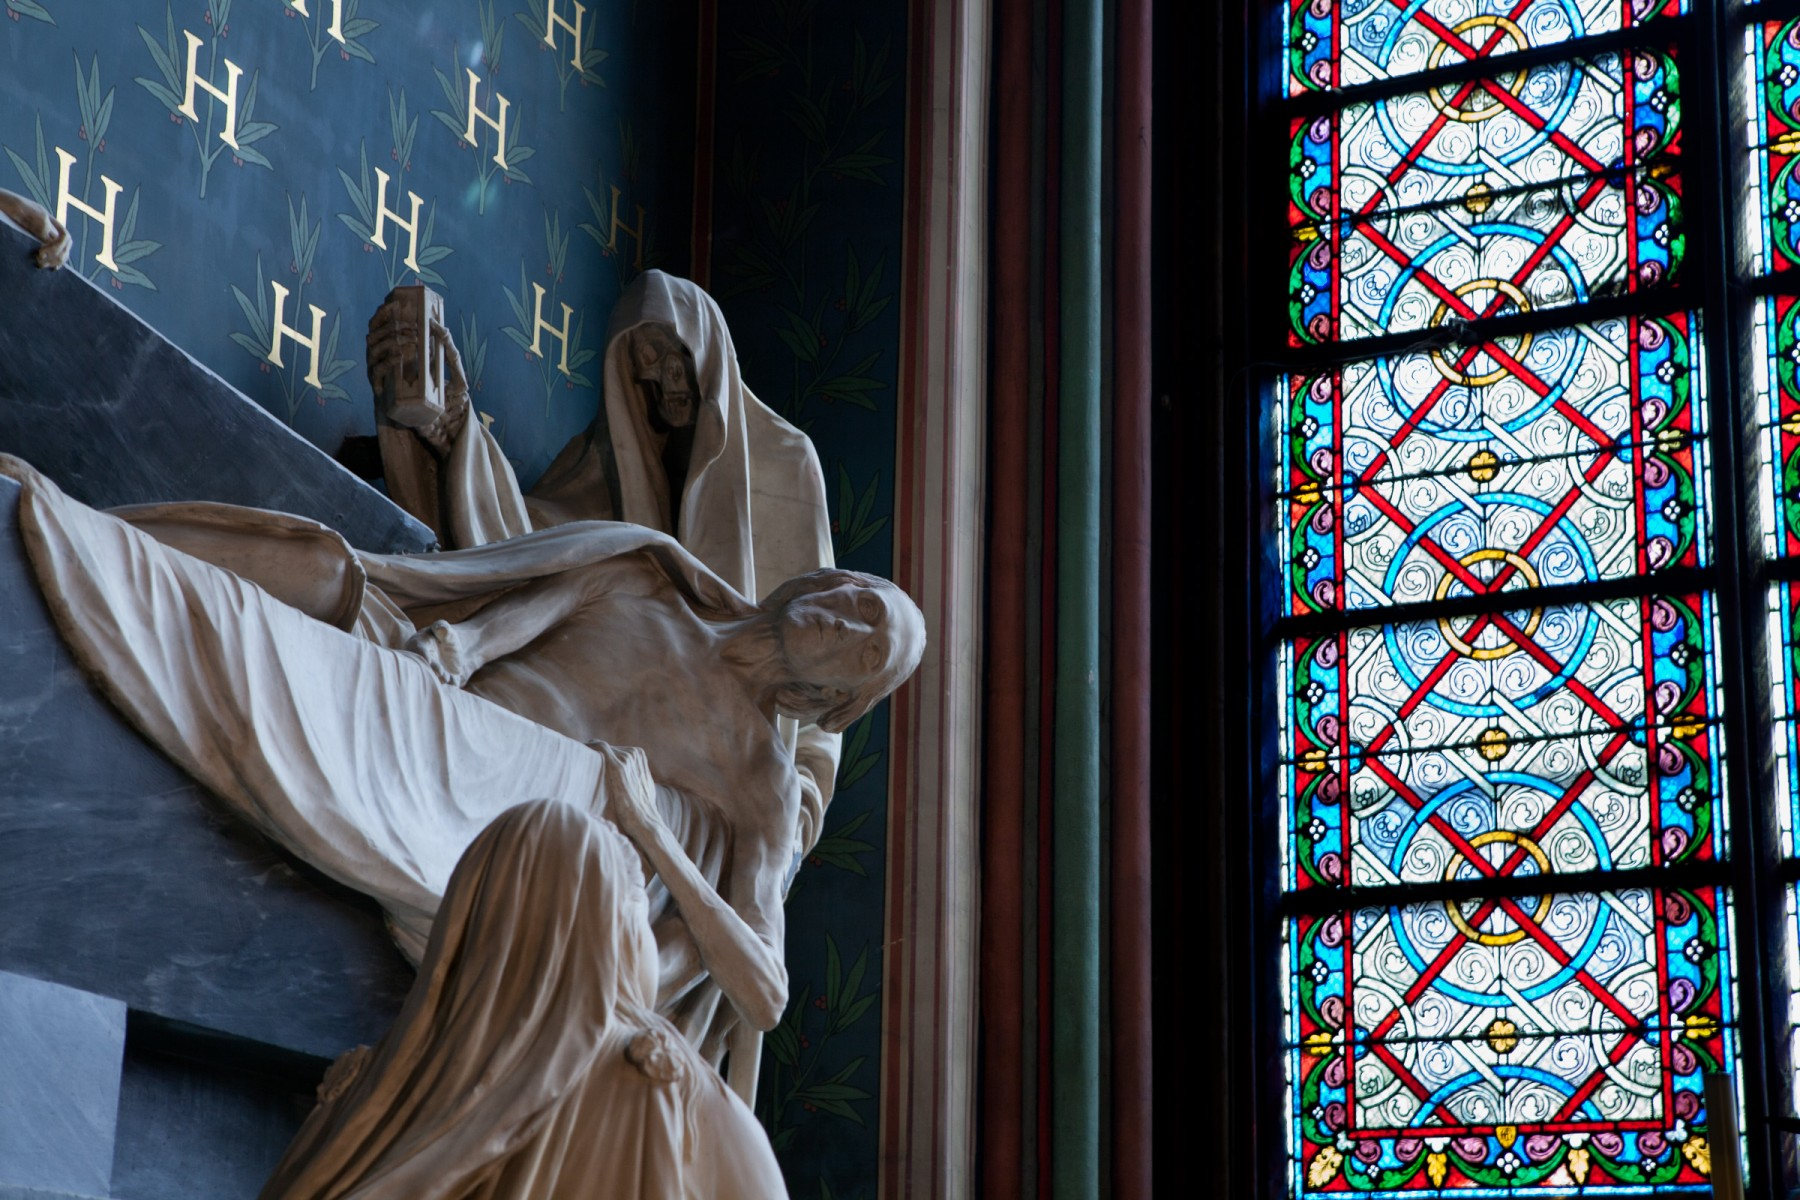 Sculpture of death in Notre Dame.